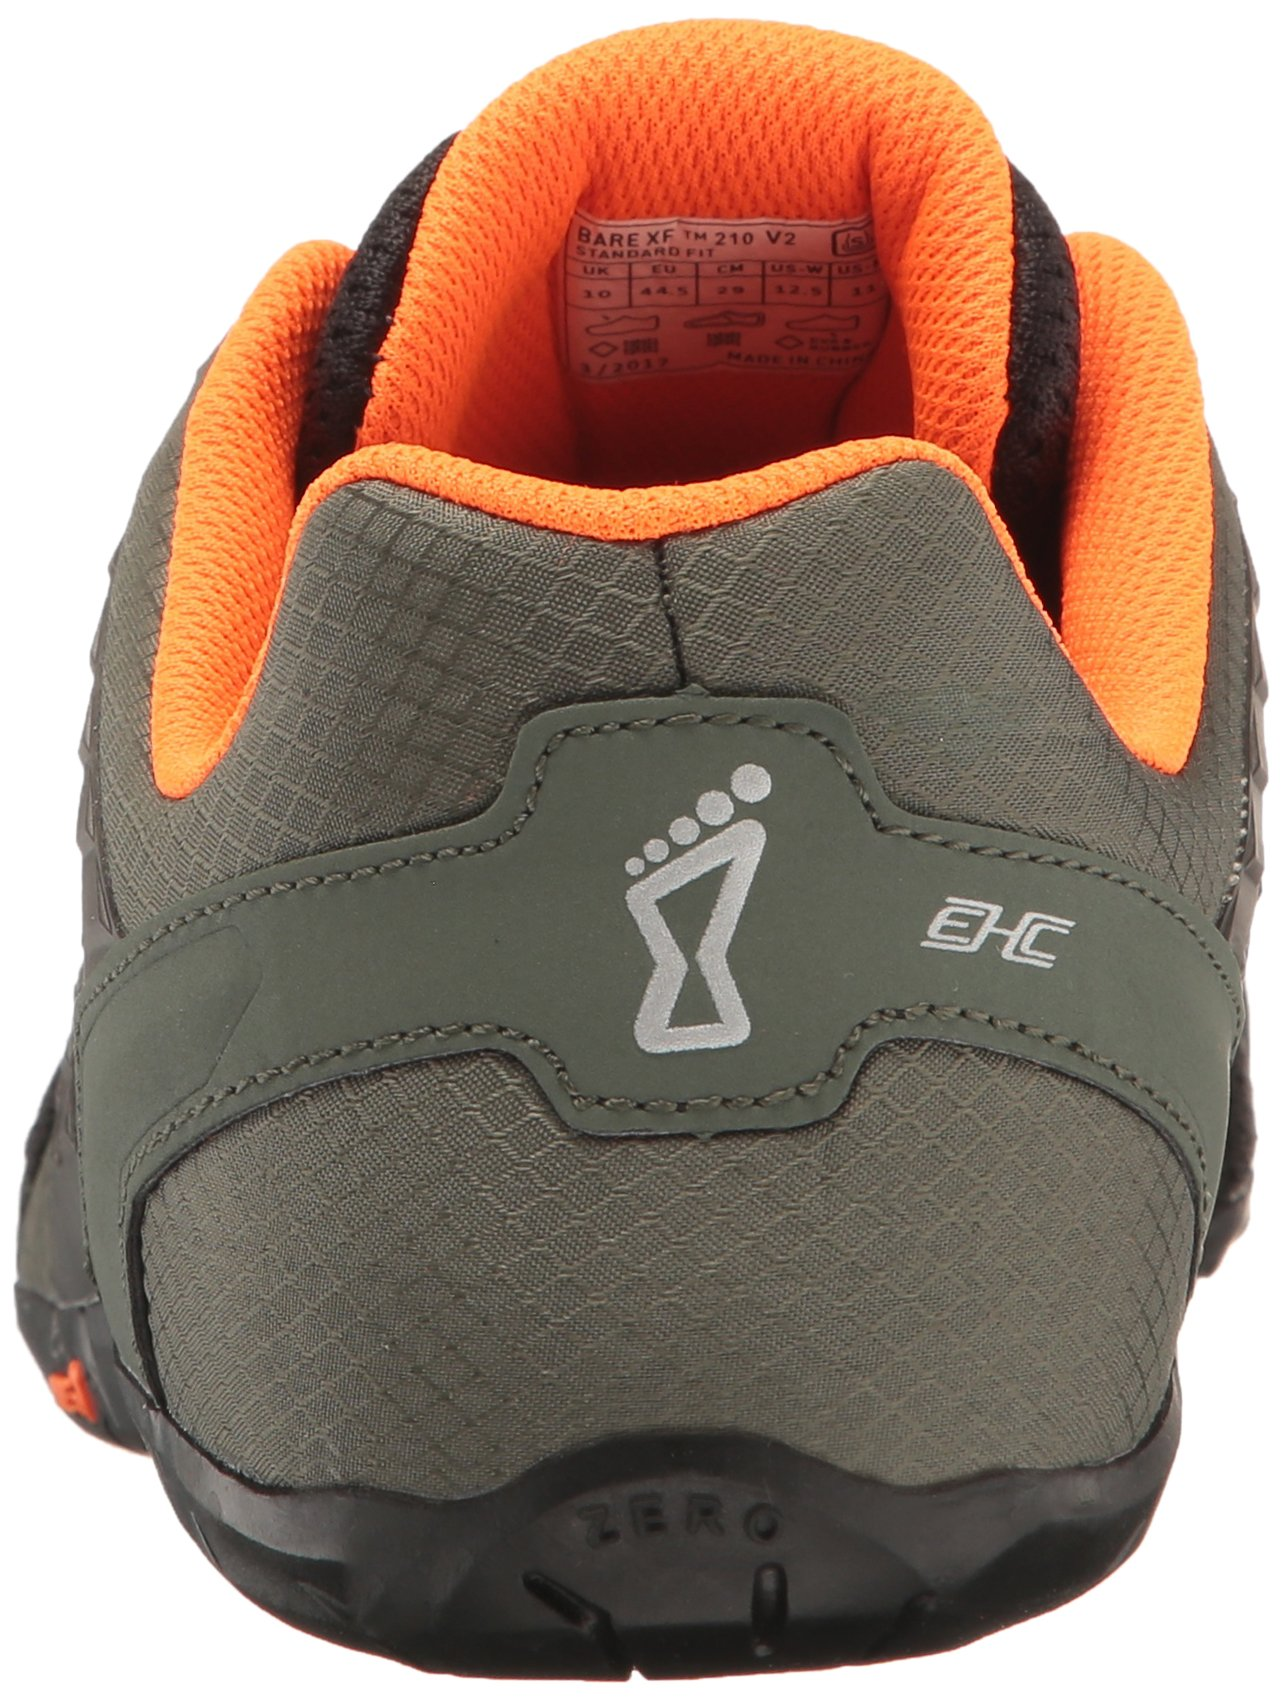 Inov-8 Men's Bare-XF 210 v2 (M) Cross Trainer Grey/Black/Orange 9 D US by Inov-8 (Image #2)